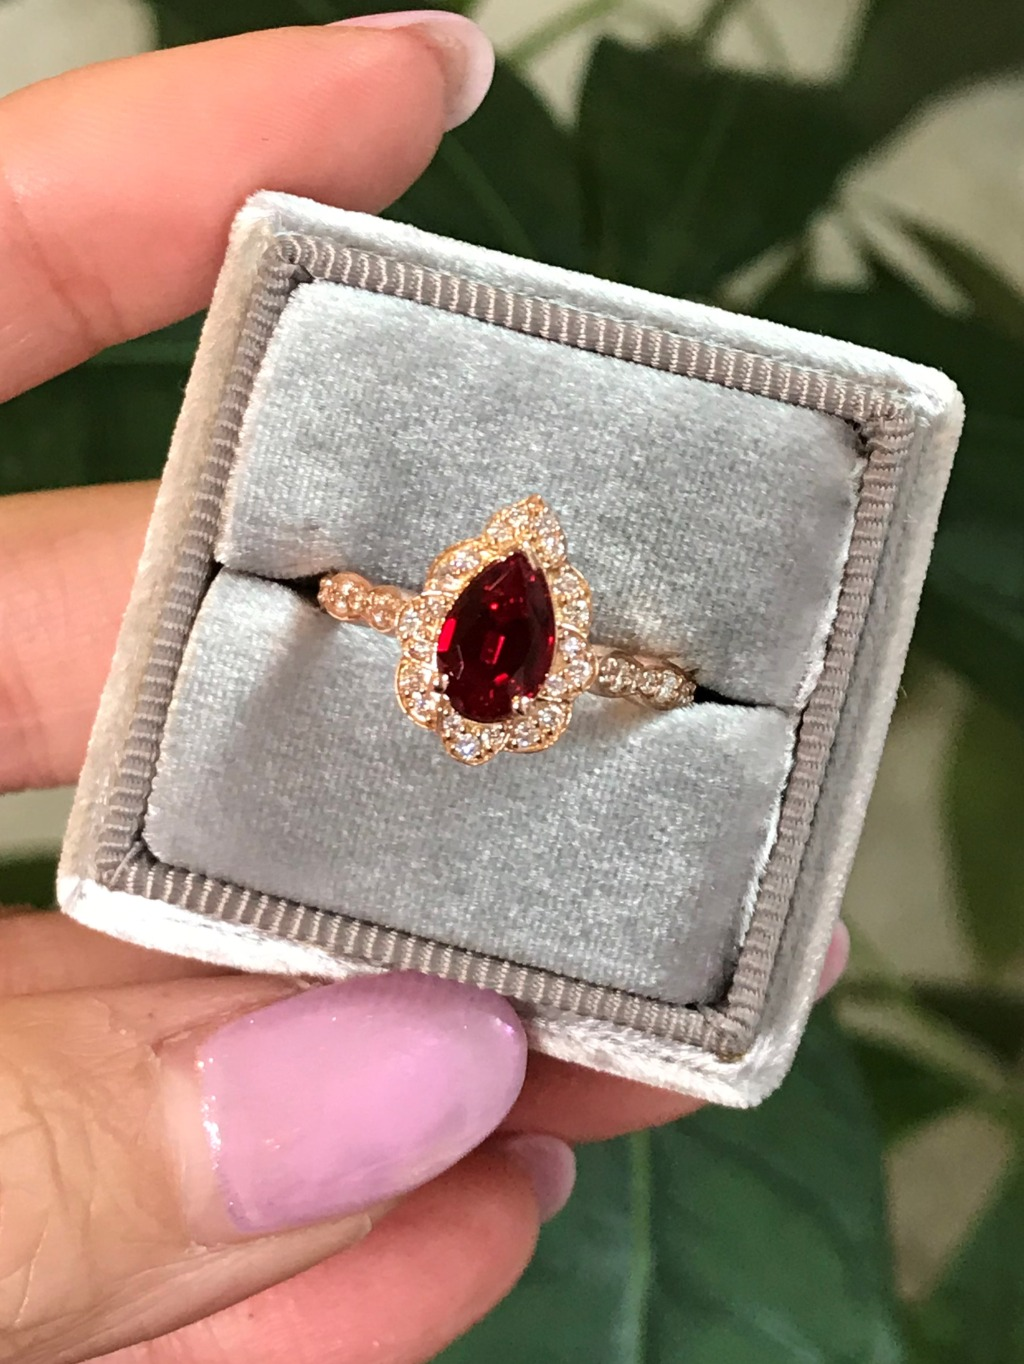 This ruby red pear cut beauty will be listed on our website soon! Visit our Pear Cut collection to view our existing designs, like